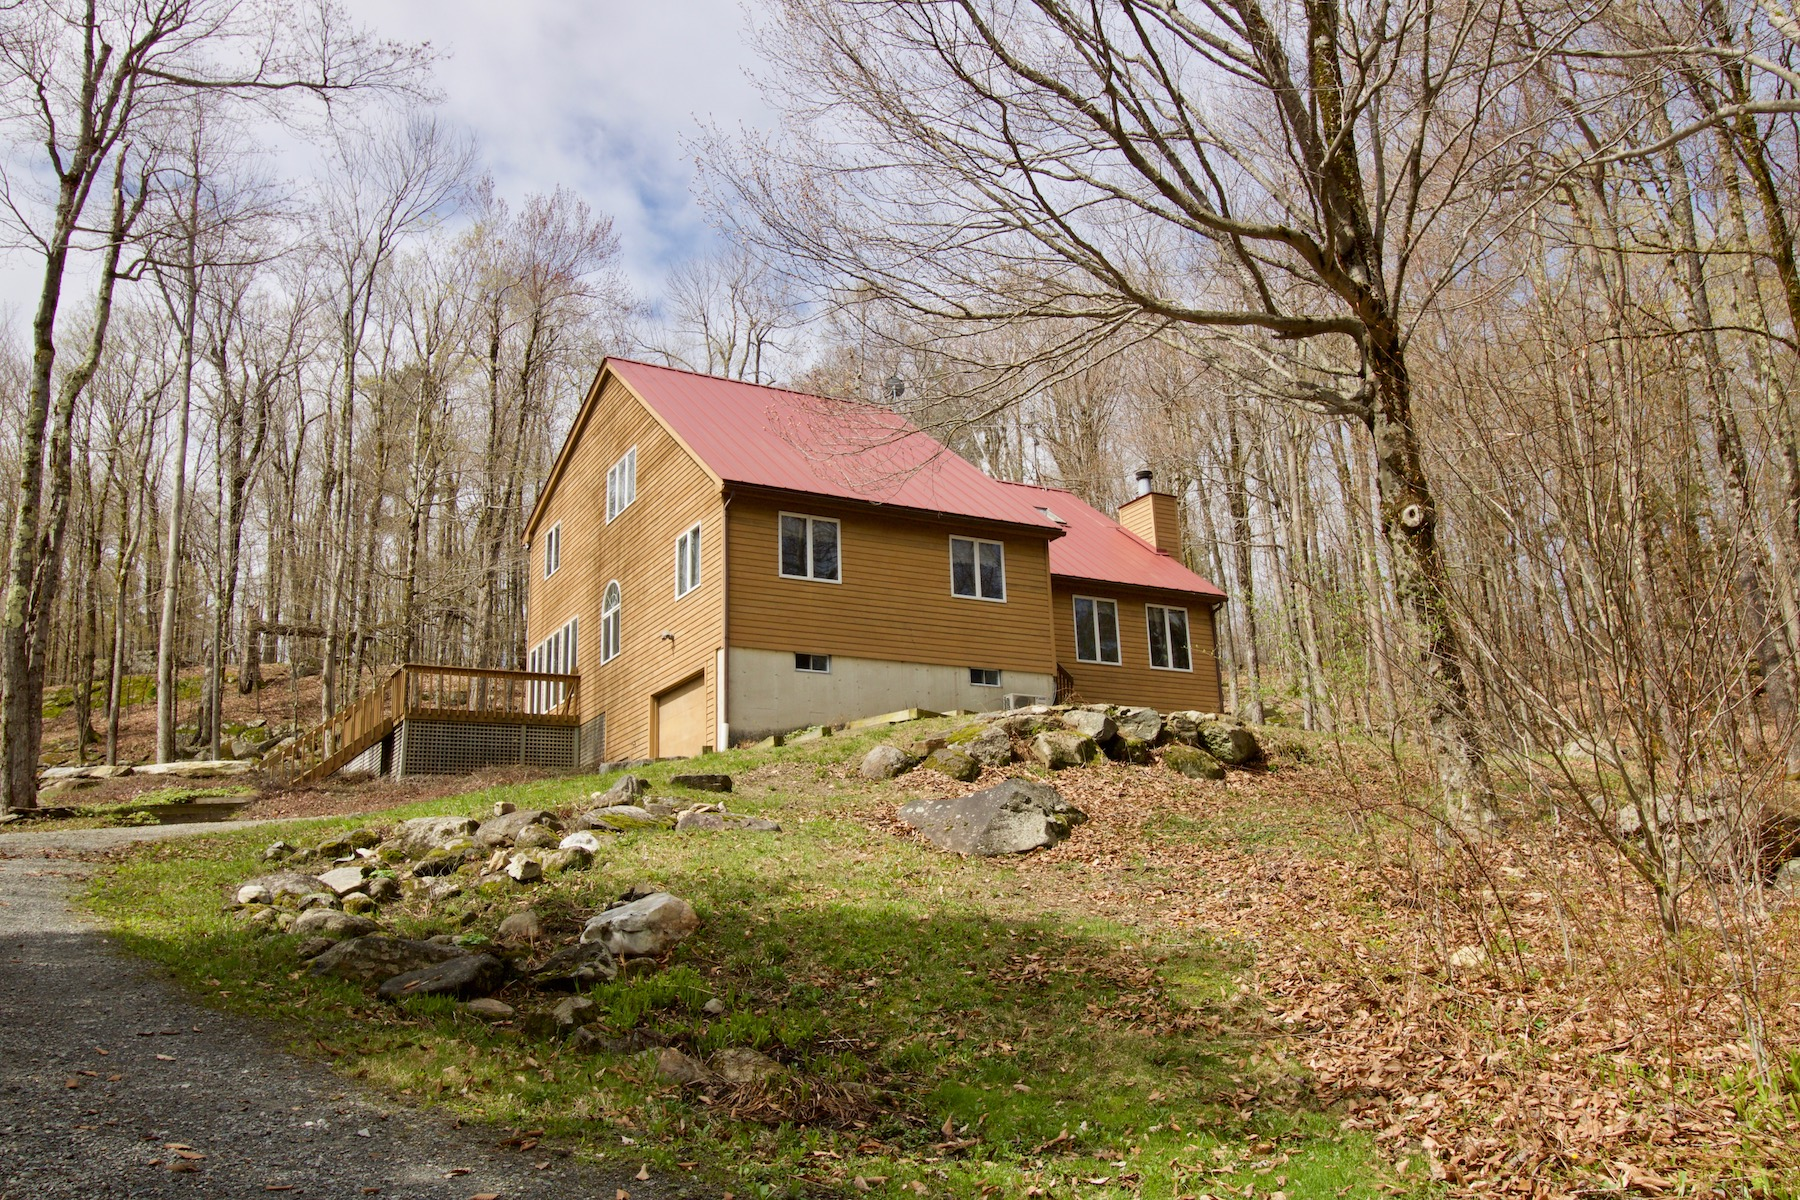 Single Family Home for Active at Spacious, Private and Perfectly Sited County Home! 99 Jacobs Hollow Rd Becket, Massachusetts 01223 United States